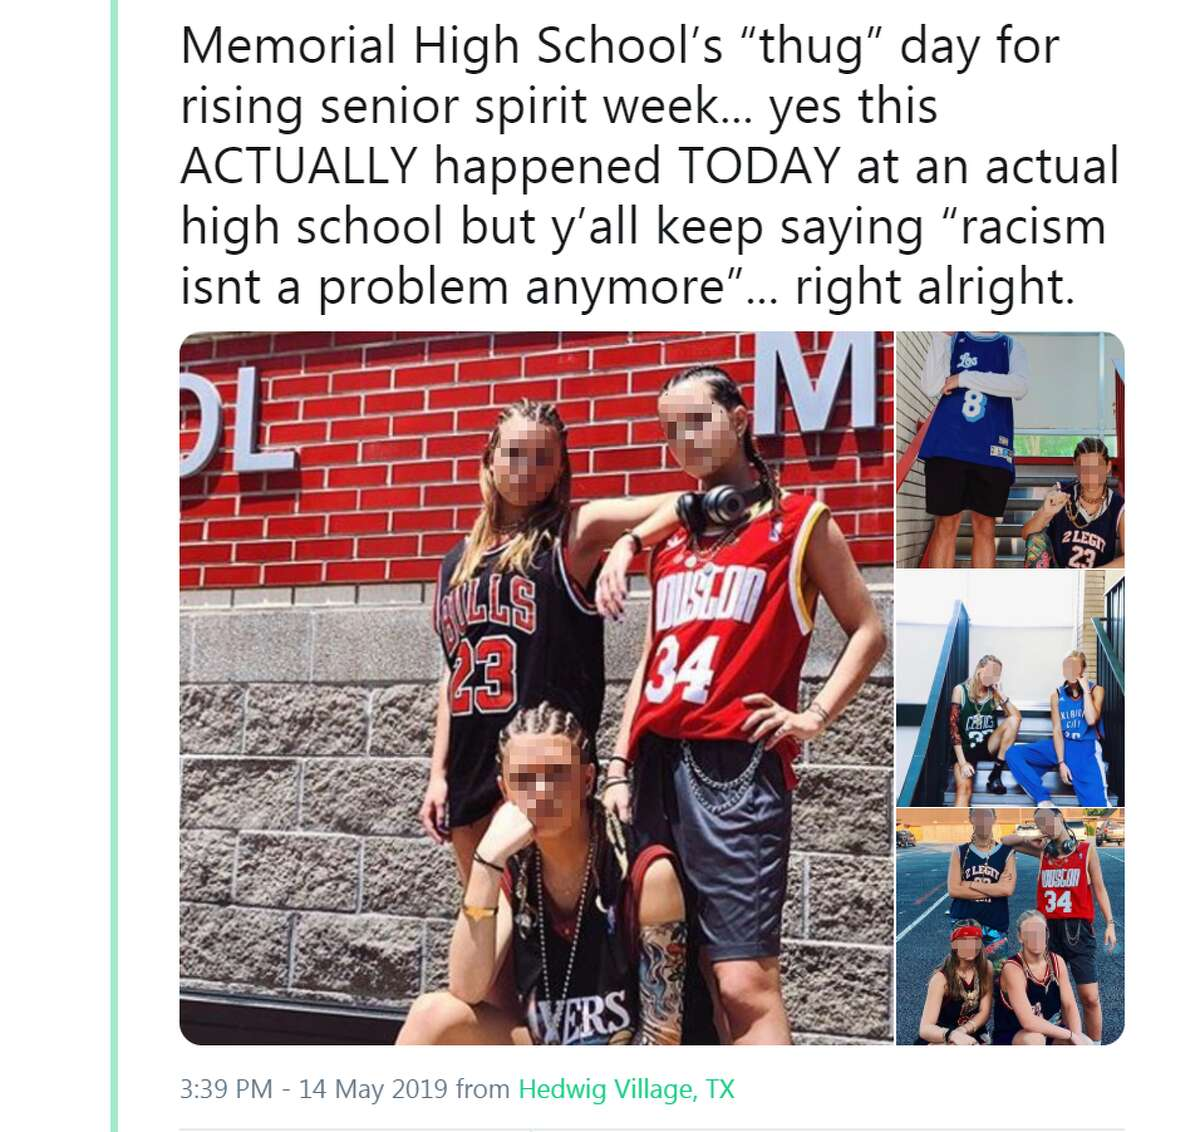 """A few students at Memorial High School came under fire in May 2019 after they surfaced in viral photos wearing controversial additions to their """"Jersey Day"""" attire during the school's spirit week celebrations. Read more: Houston community reacts to controversial 'Thug Day' fallout at Memorial High School"""